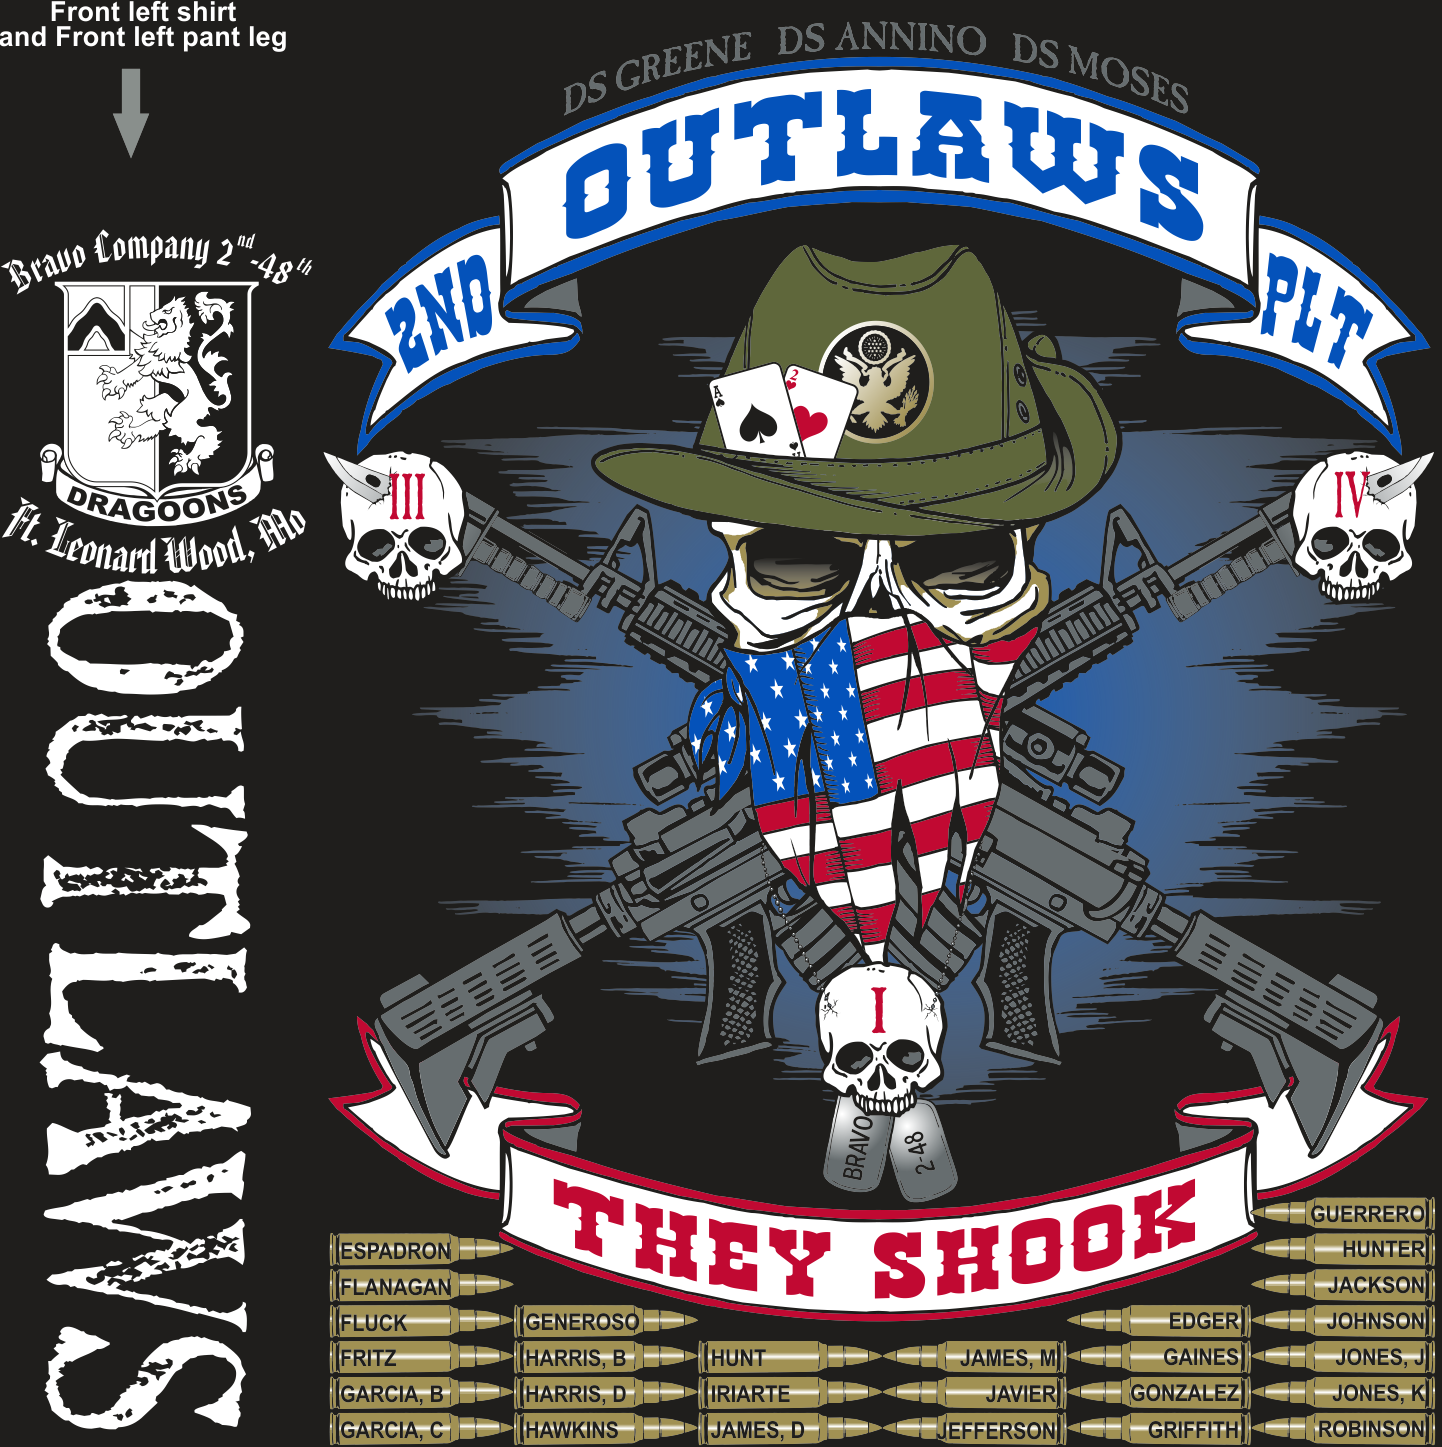 BRAVO 2-48 OUTLAWS GRADUATING DAY 2-1-2018 digital